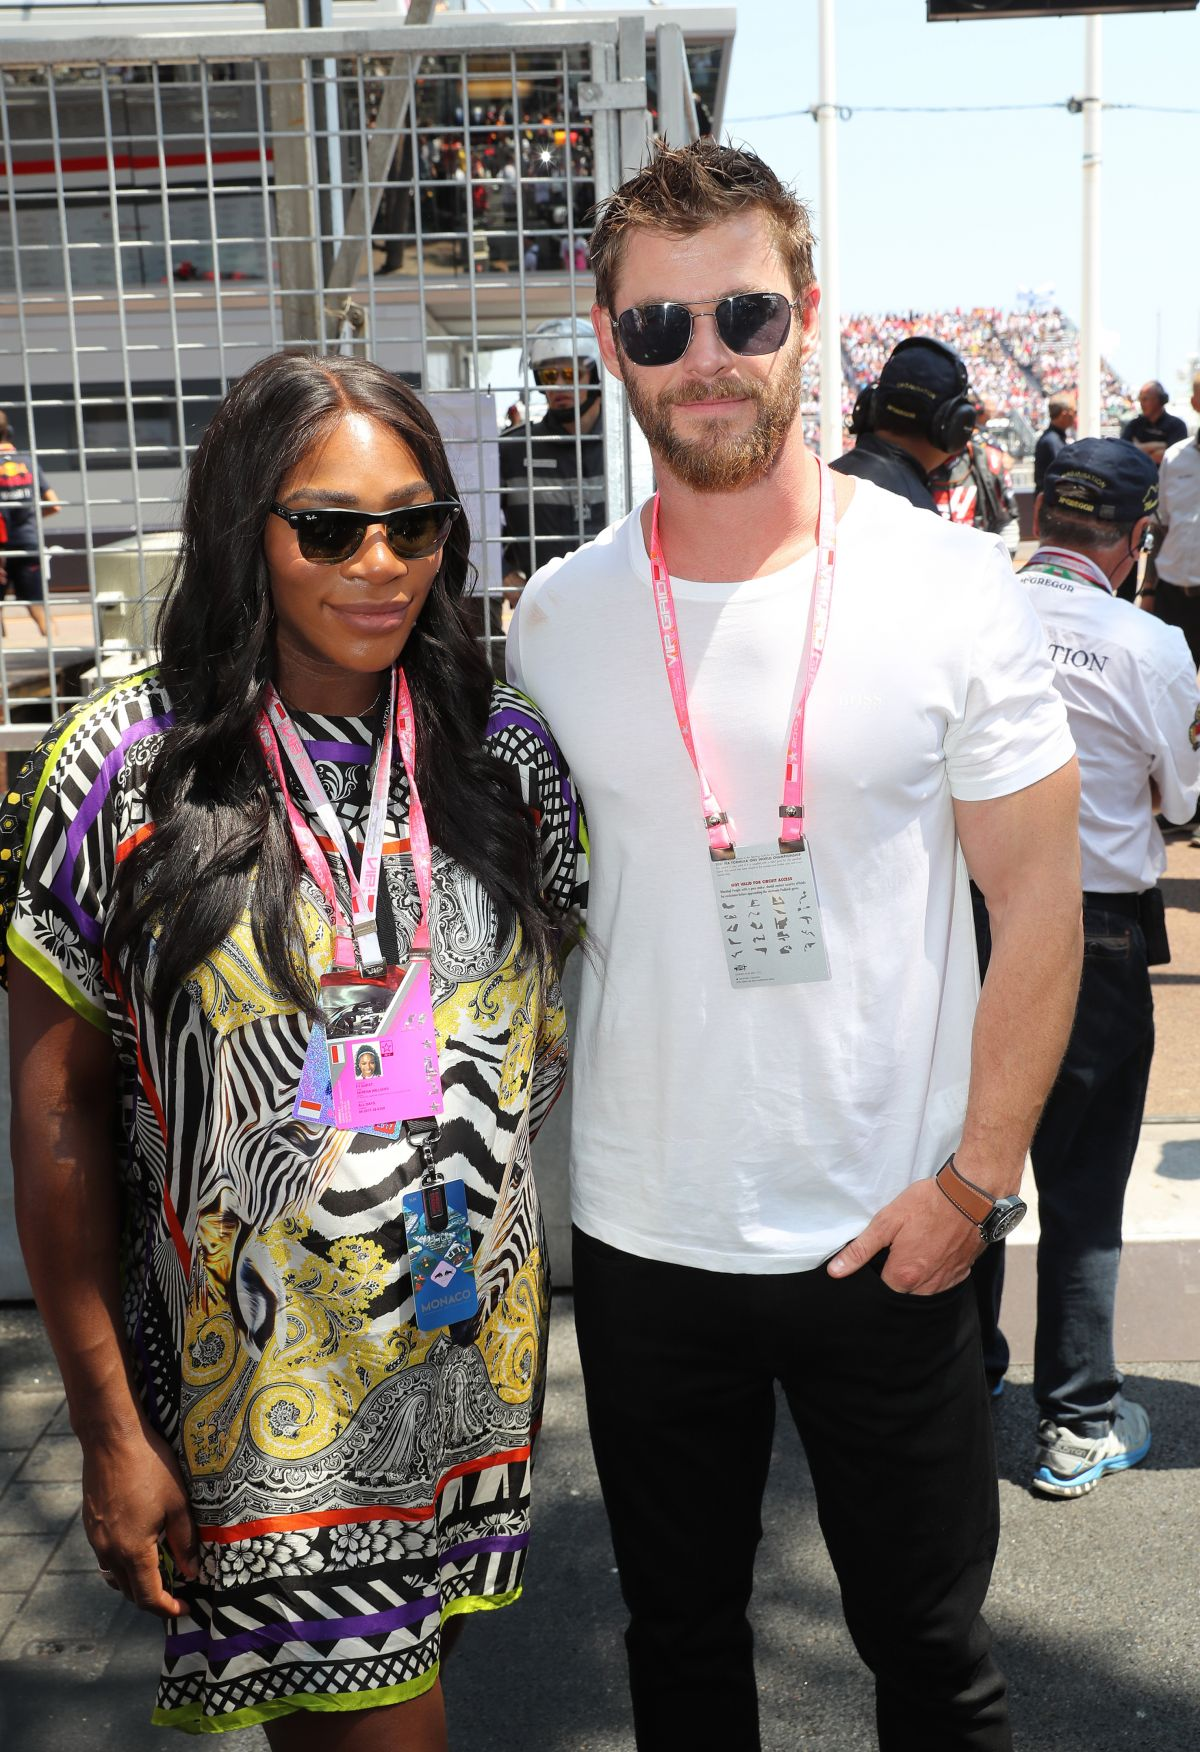 SERENA WILLIAMS at Pitlane at 75th Monaco Formula 1 Grand Prix 05/28/2017